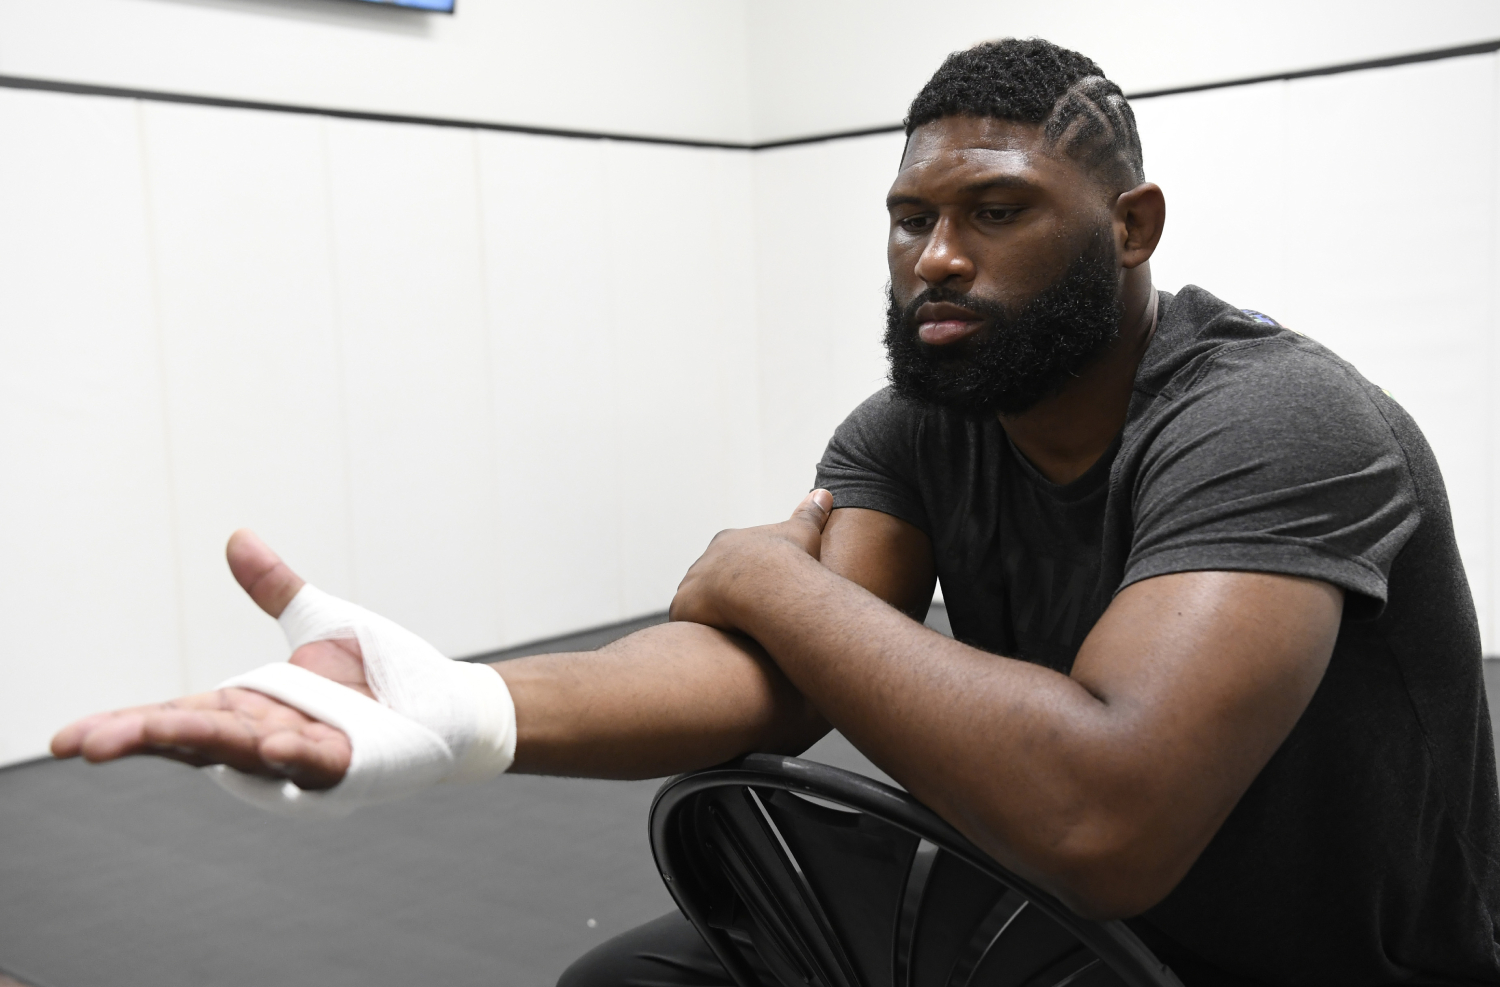 Curtis Blaydes getting his hands taped up before a UFC fight